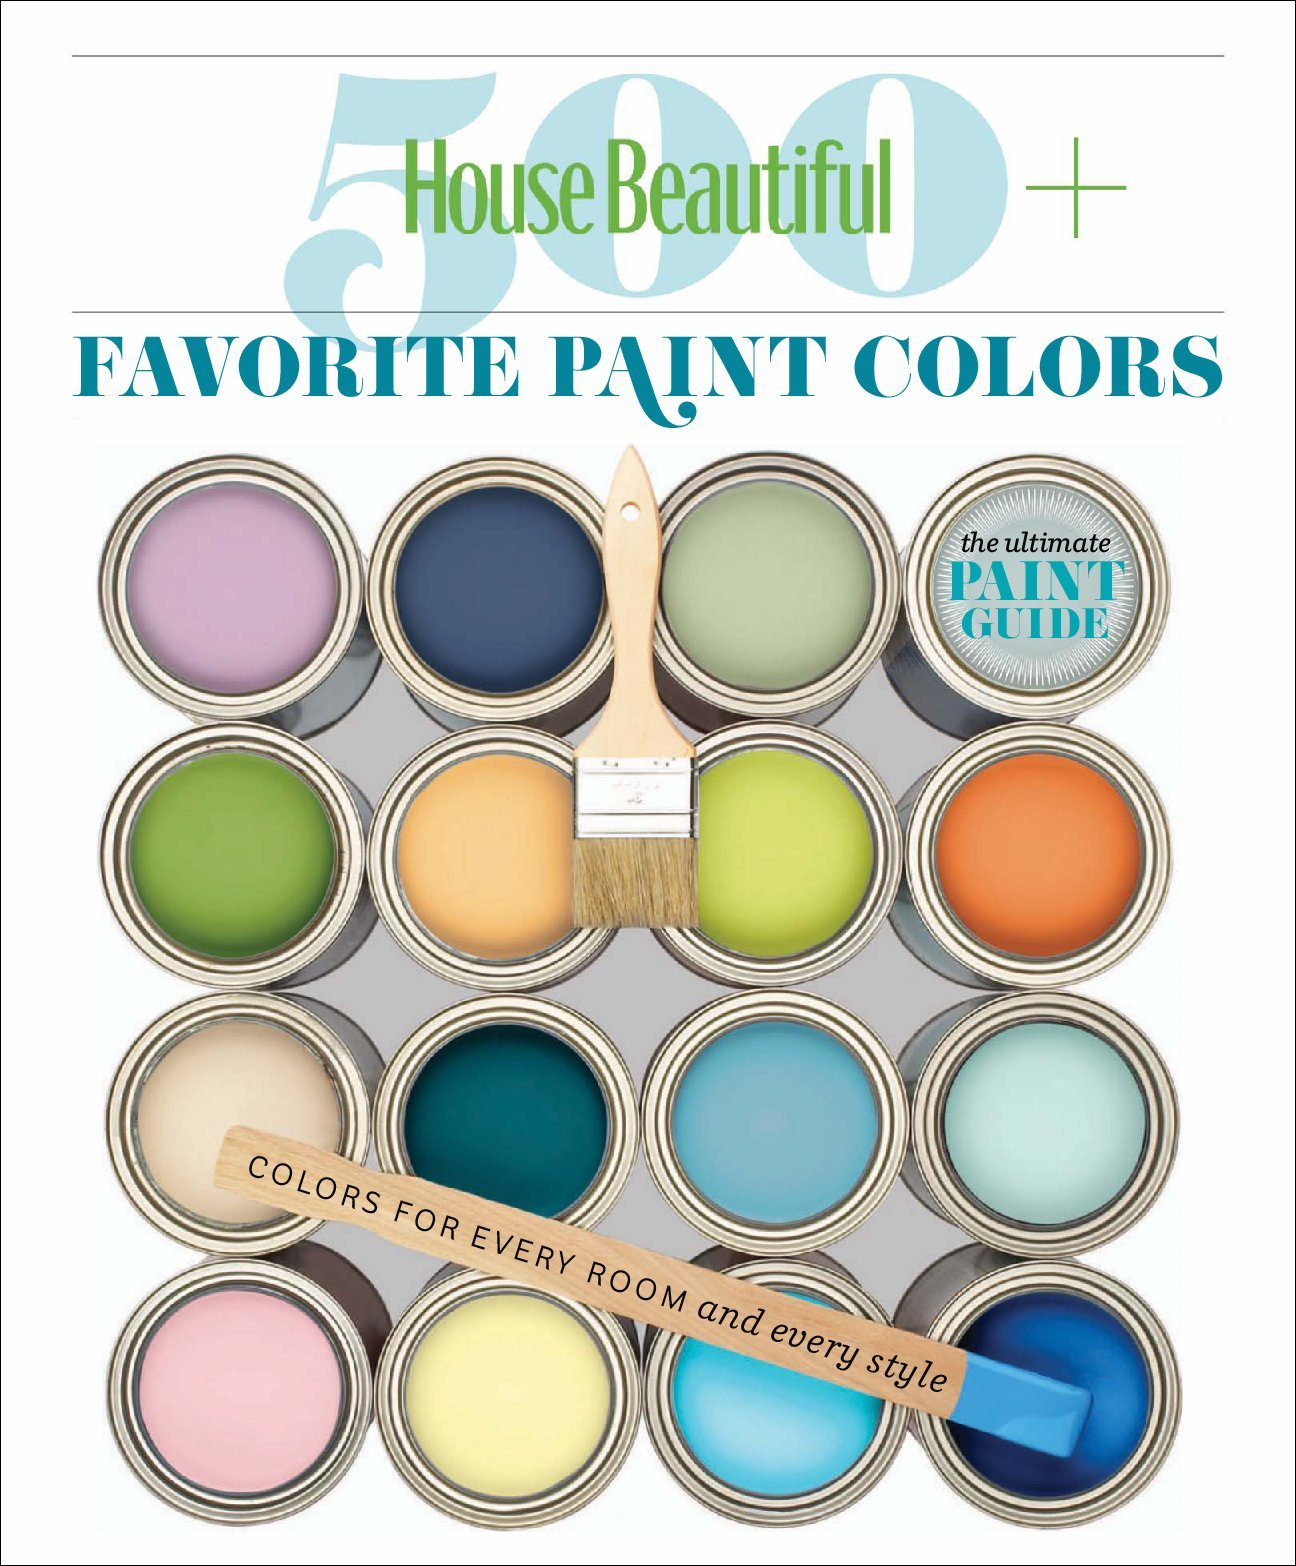 House Beautiful 500 Favorite Paint Colors Magazine